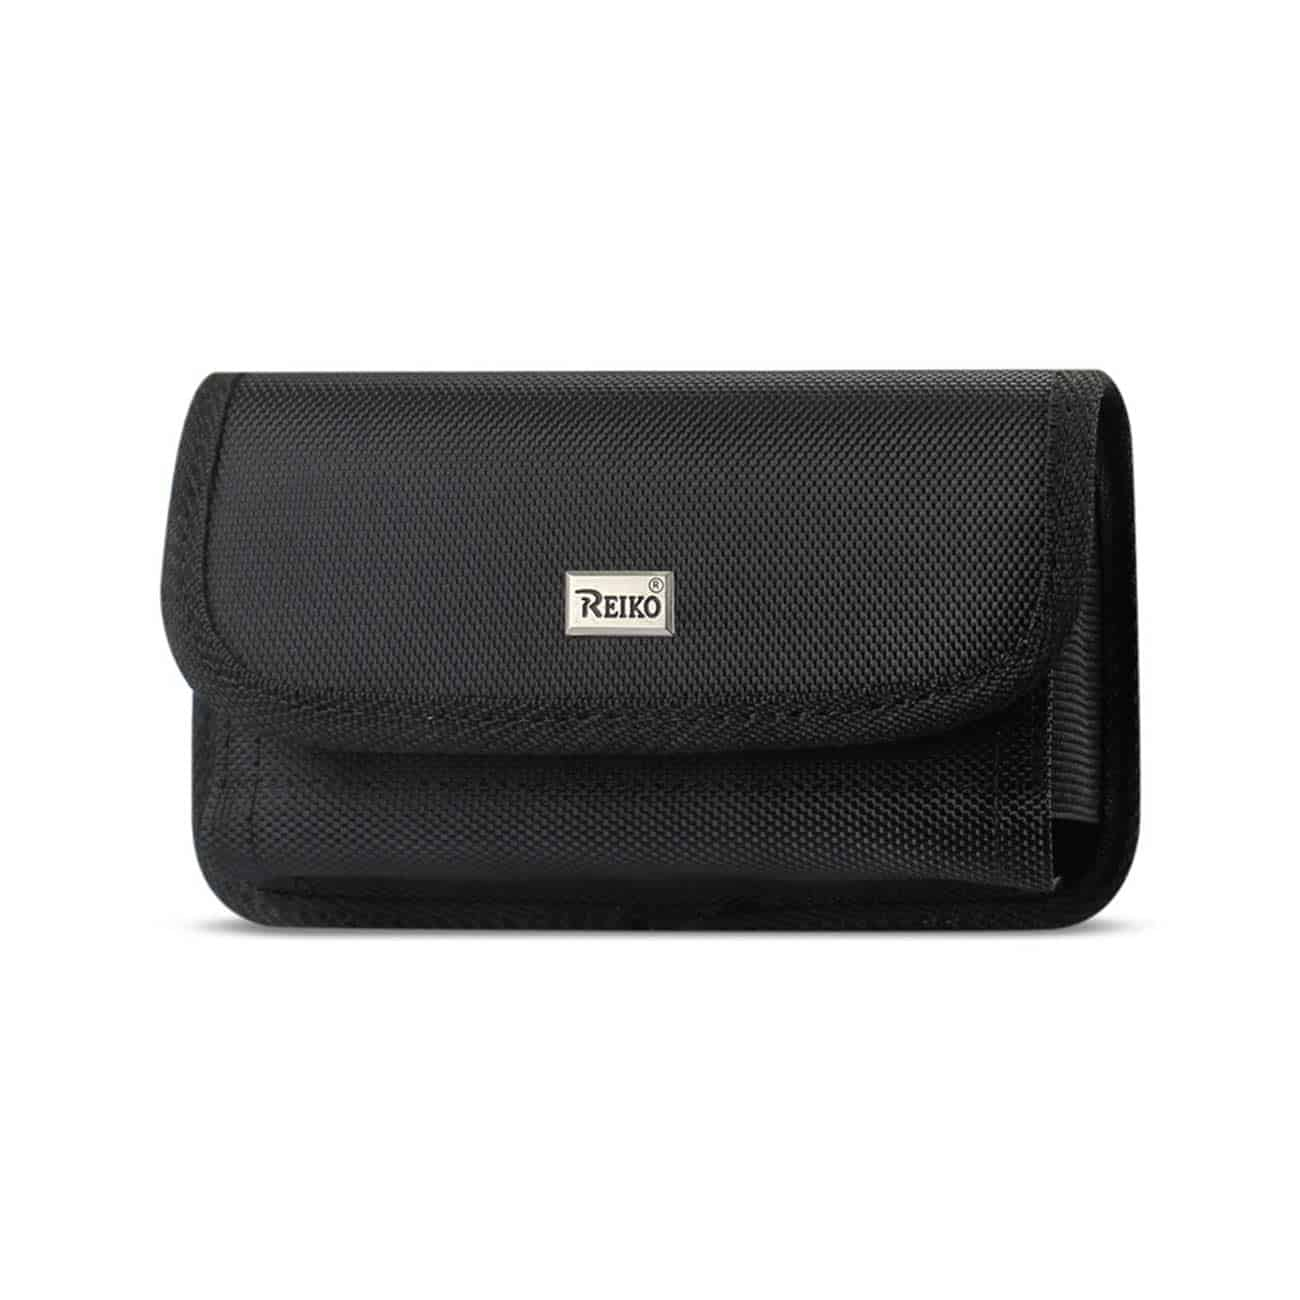 Horizontal Rugged Pouch With Velcro In Black (5.8X3.2X0.7 Inches)